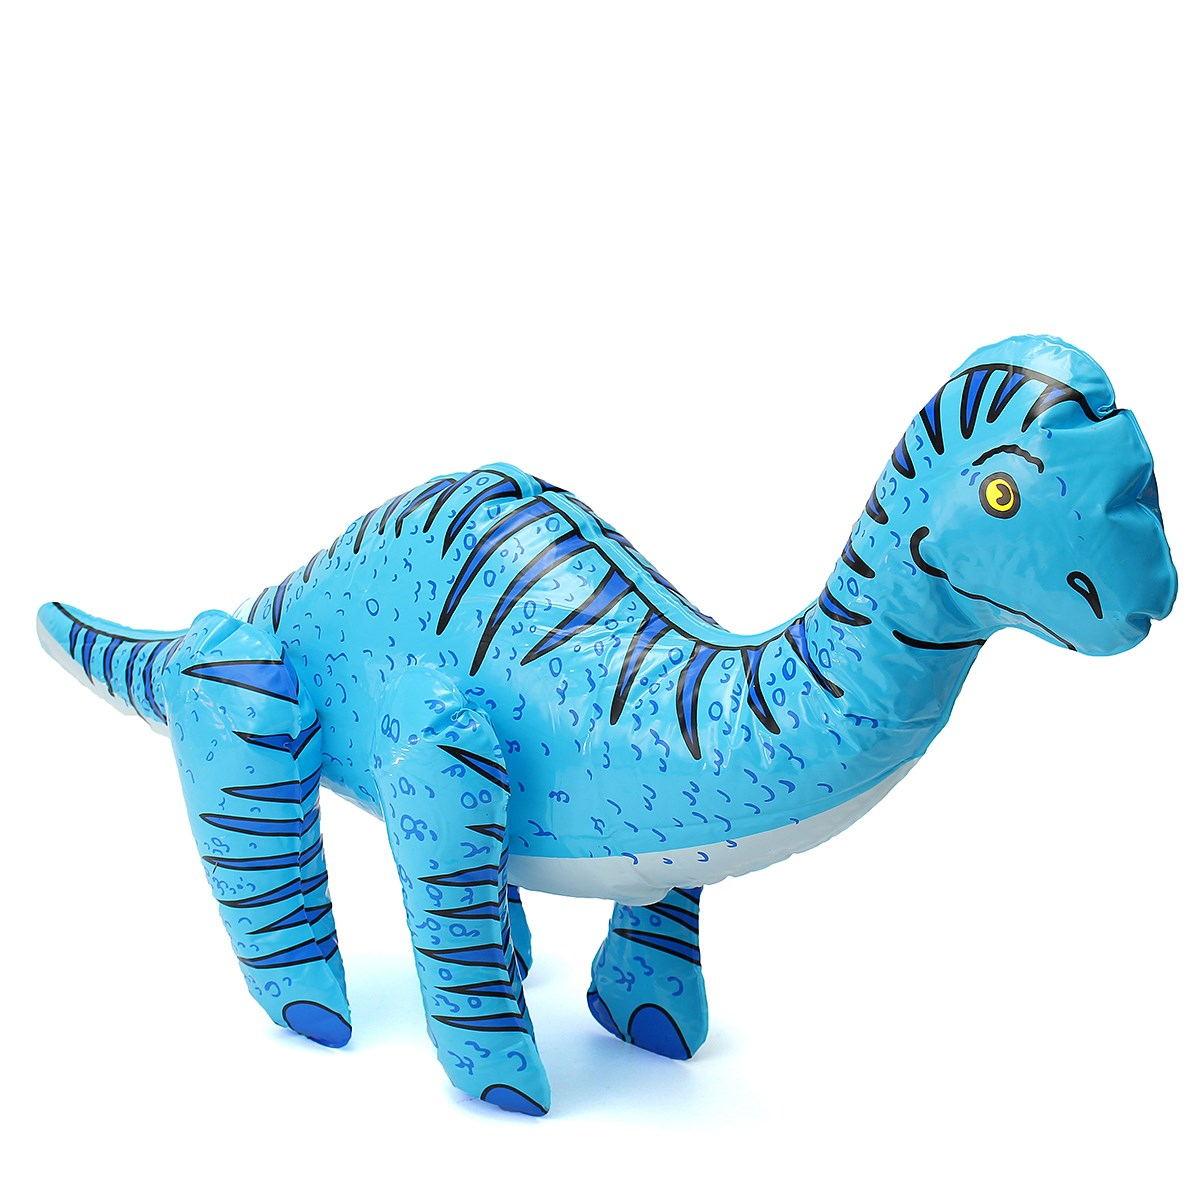 New-Arrival-Inflatable-PVC-Dinosaur-Blow-up-Pool-Water-Toy-Children-Kids-Toy-Kids-Animal-Toy-For-Party-Children-Gift-2